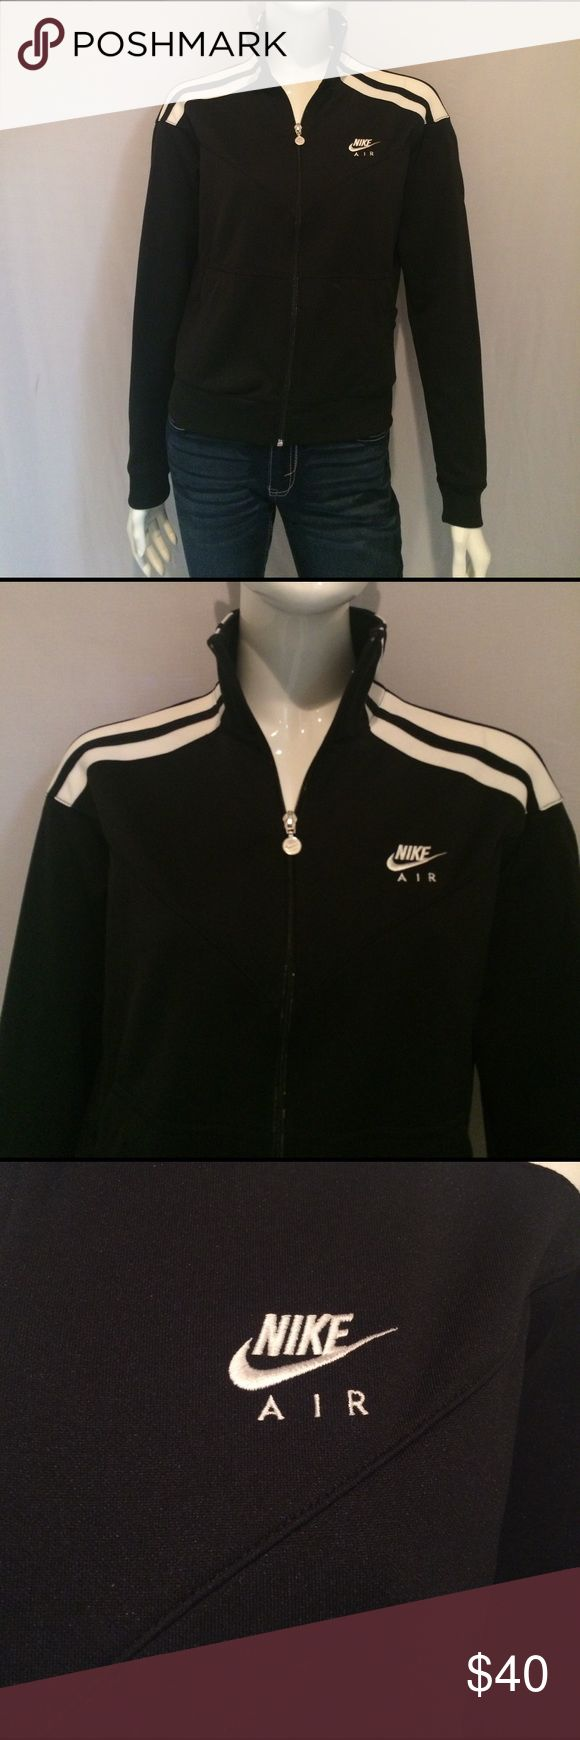 """Nike Women's Running Jacket Nike Women's Running Jacket. Two Pockets. Zippered front pockets for secure storage.  Size: Medium ( 6-10). 87% Polyester, 13% Cotton. Measurements: Armpit to Armpit 19.5"""", Sleeve 23"""", Length from Neckline 21"""". Nike Jackets & Coats"""